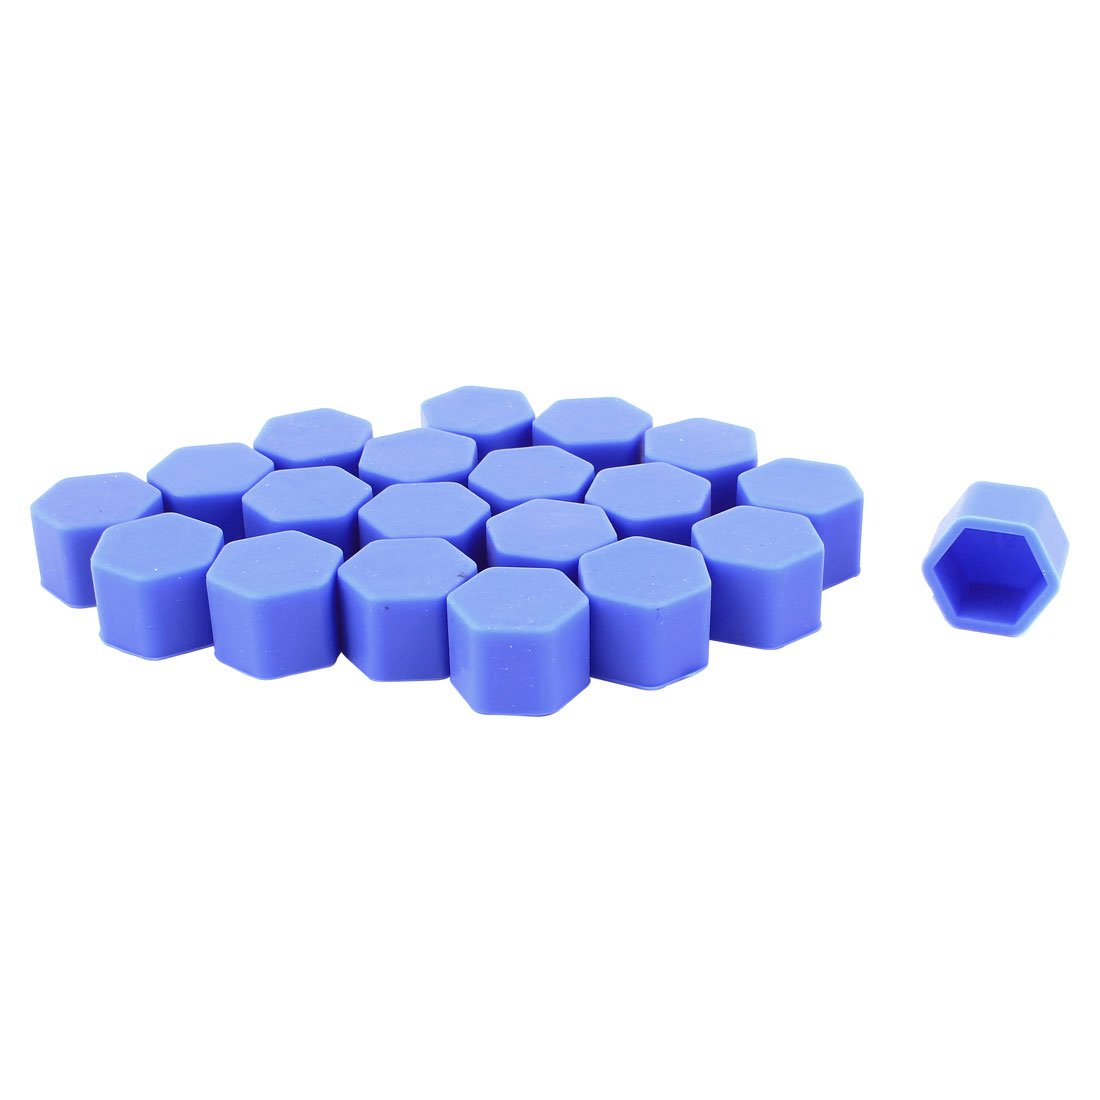 20Pcs Blue Silicone Car Wheel Hex Nuts Bolts Hub Screw Dust Covers Caps Protector 19mm